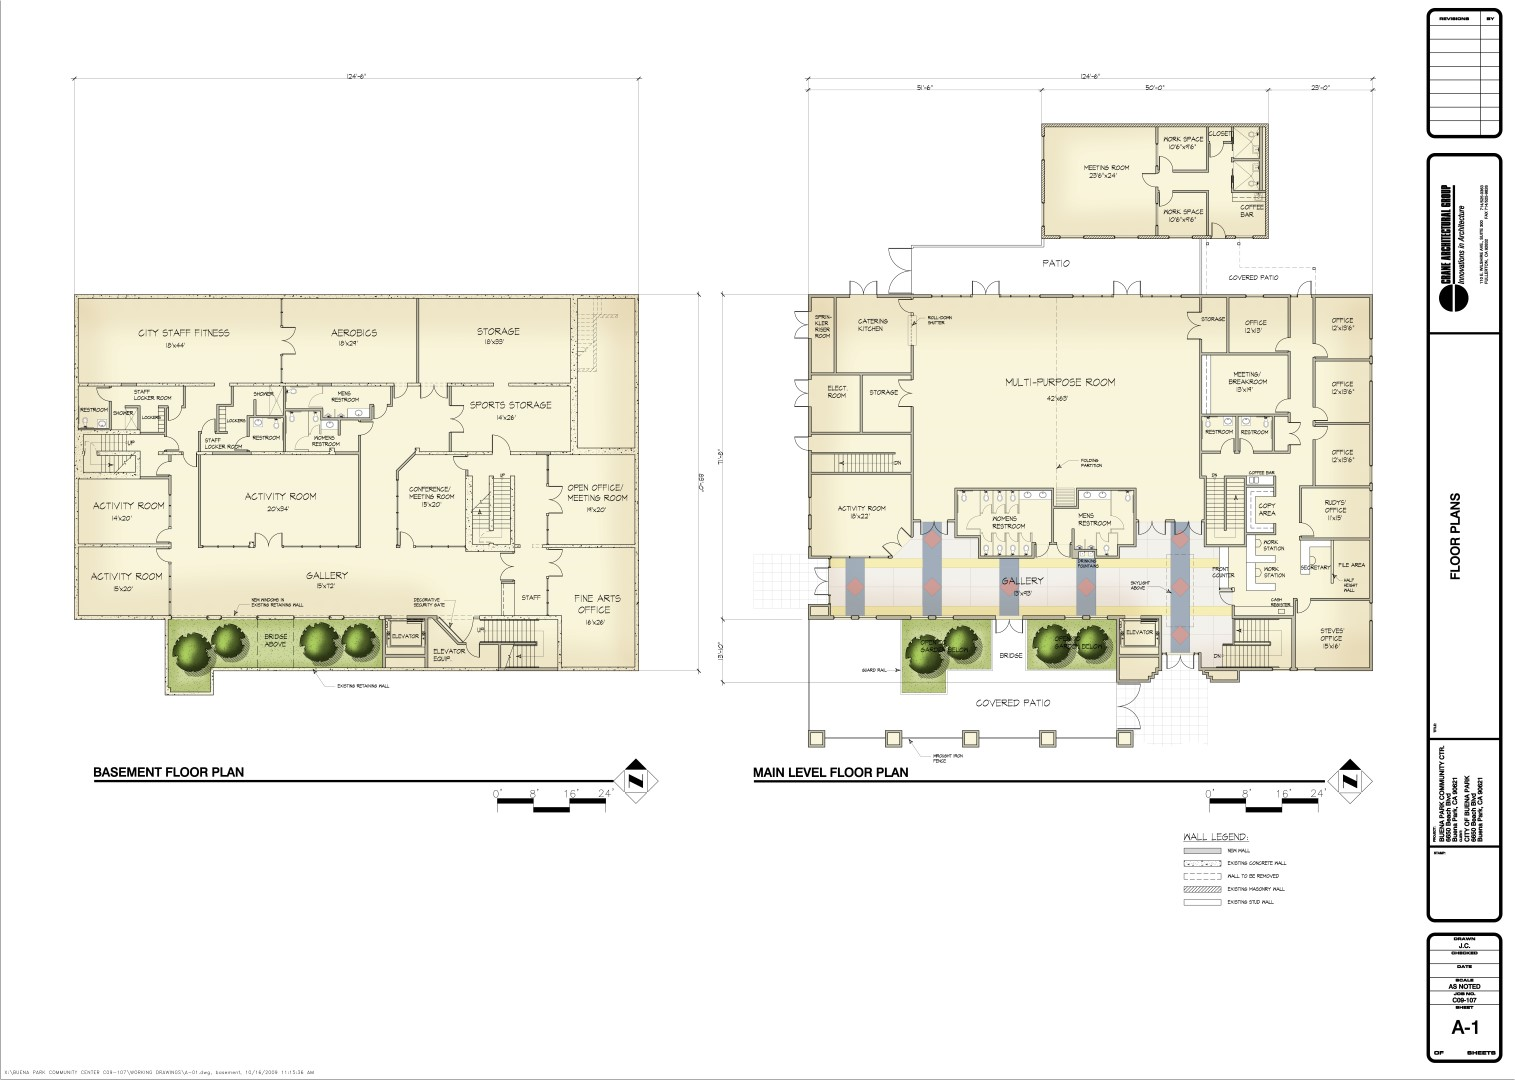 X:BUENA PARK COMMUNITY CENTER C09-107WORKING DRAWINGSA-01.dwg